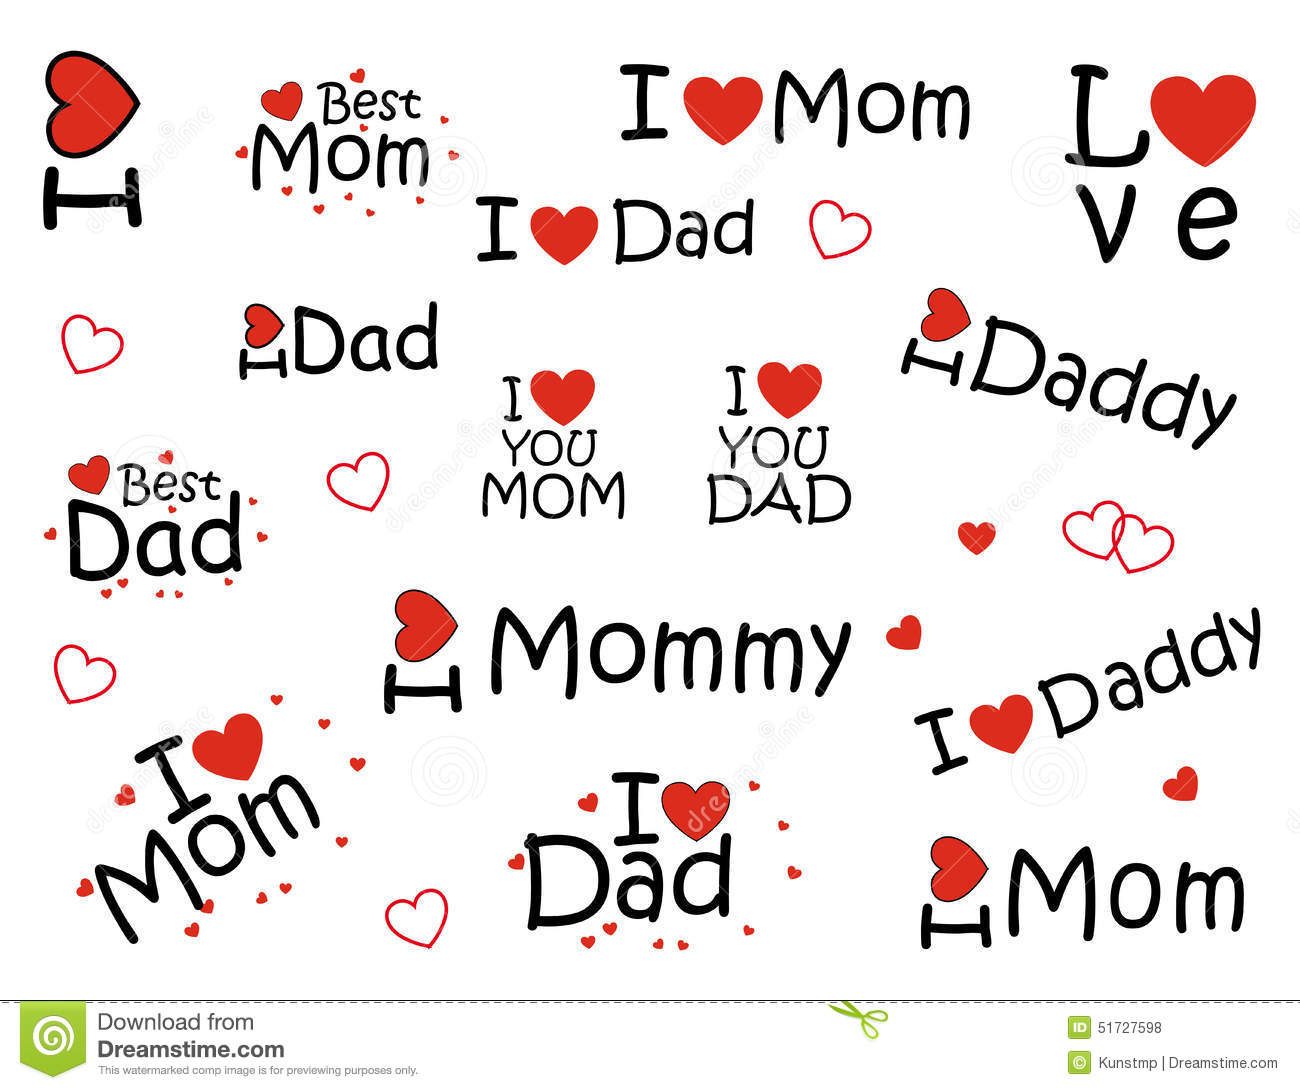 """Stickers """"i Love Mom"""" And """"I Love Dad"""", Stock Photo - Image: 51727598"""